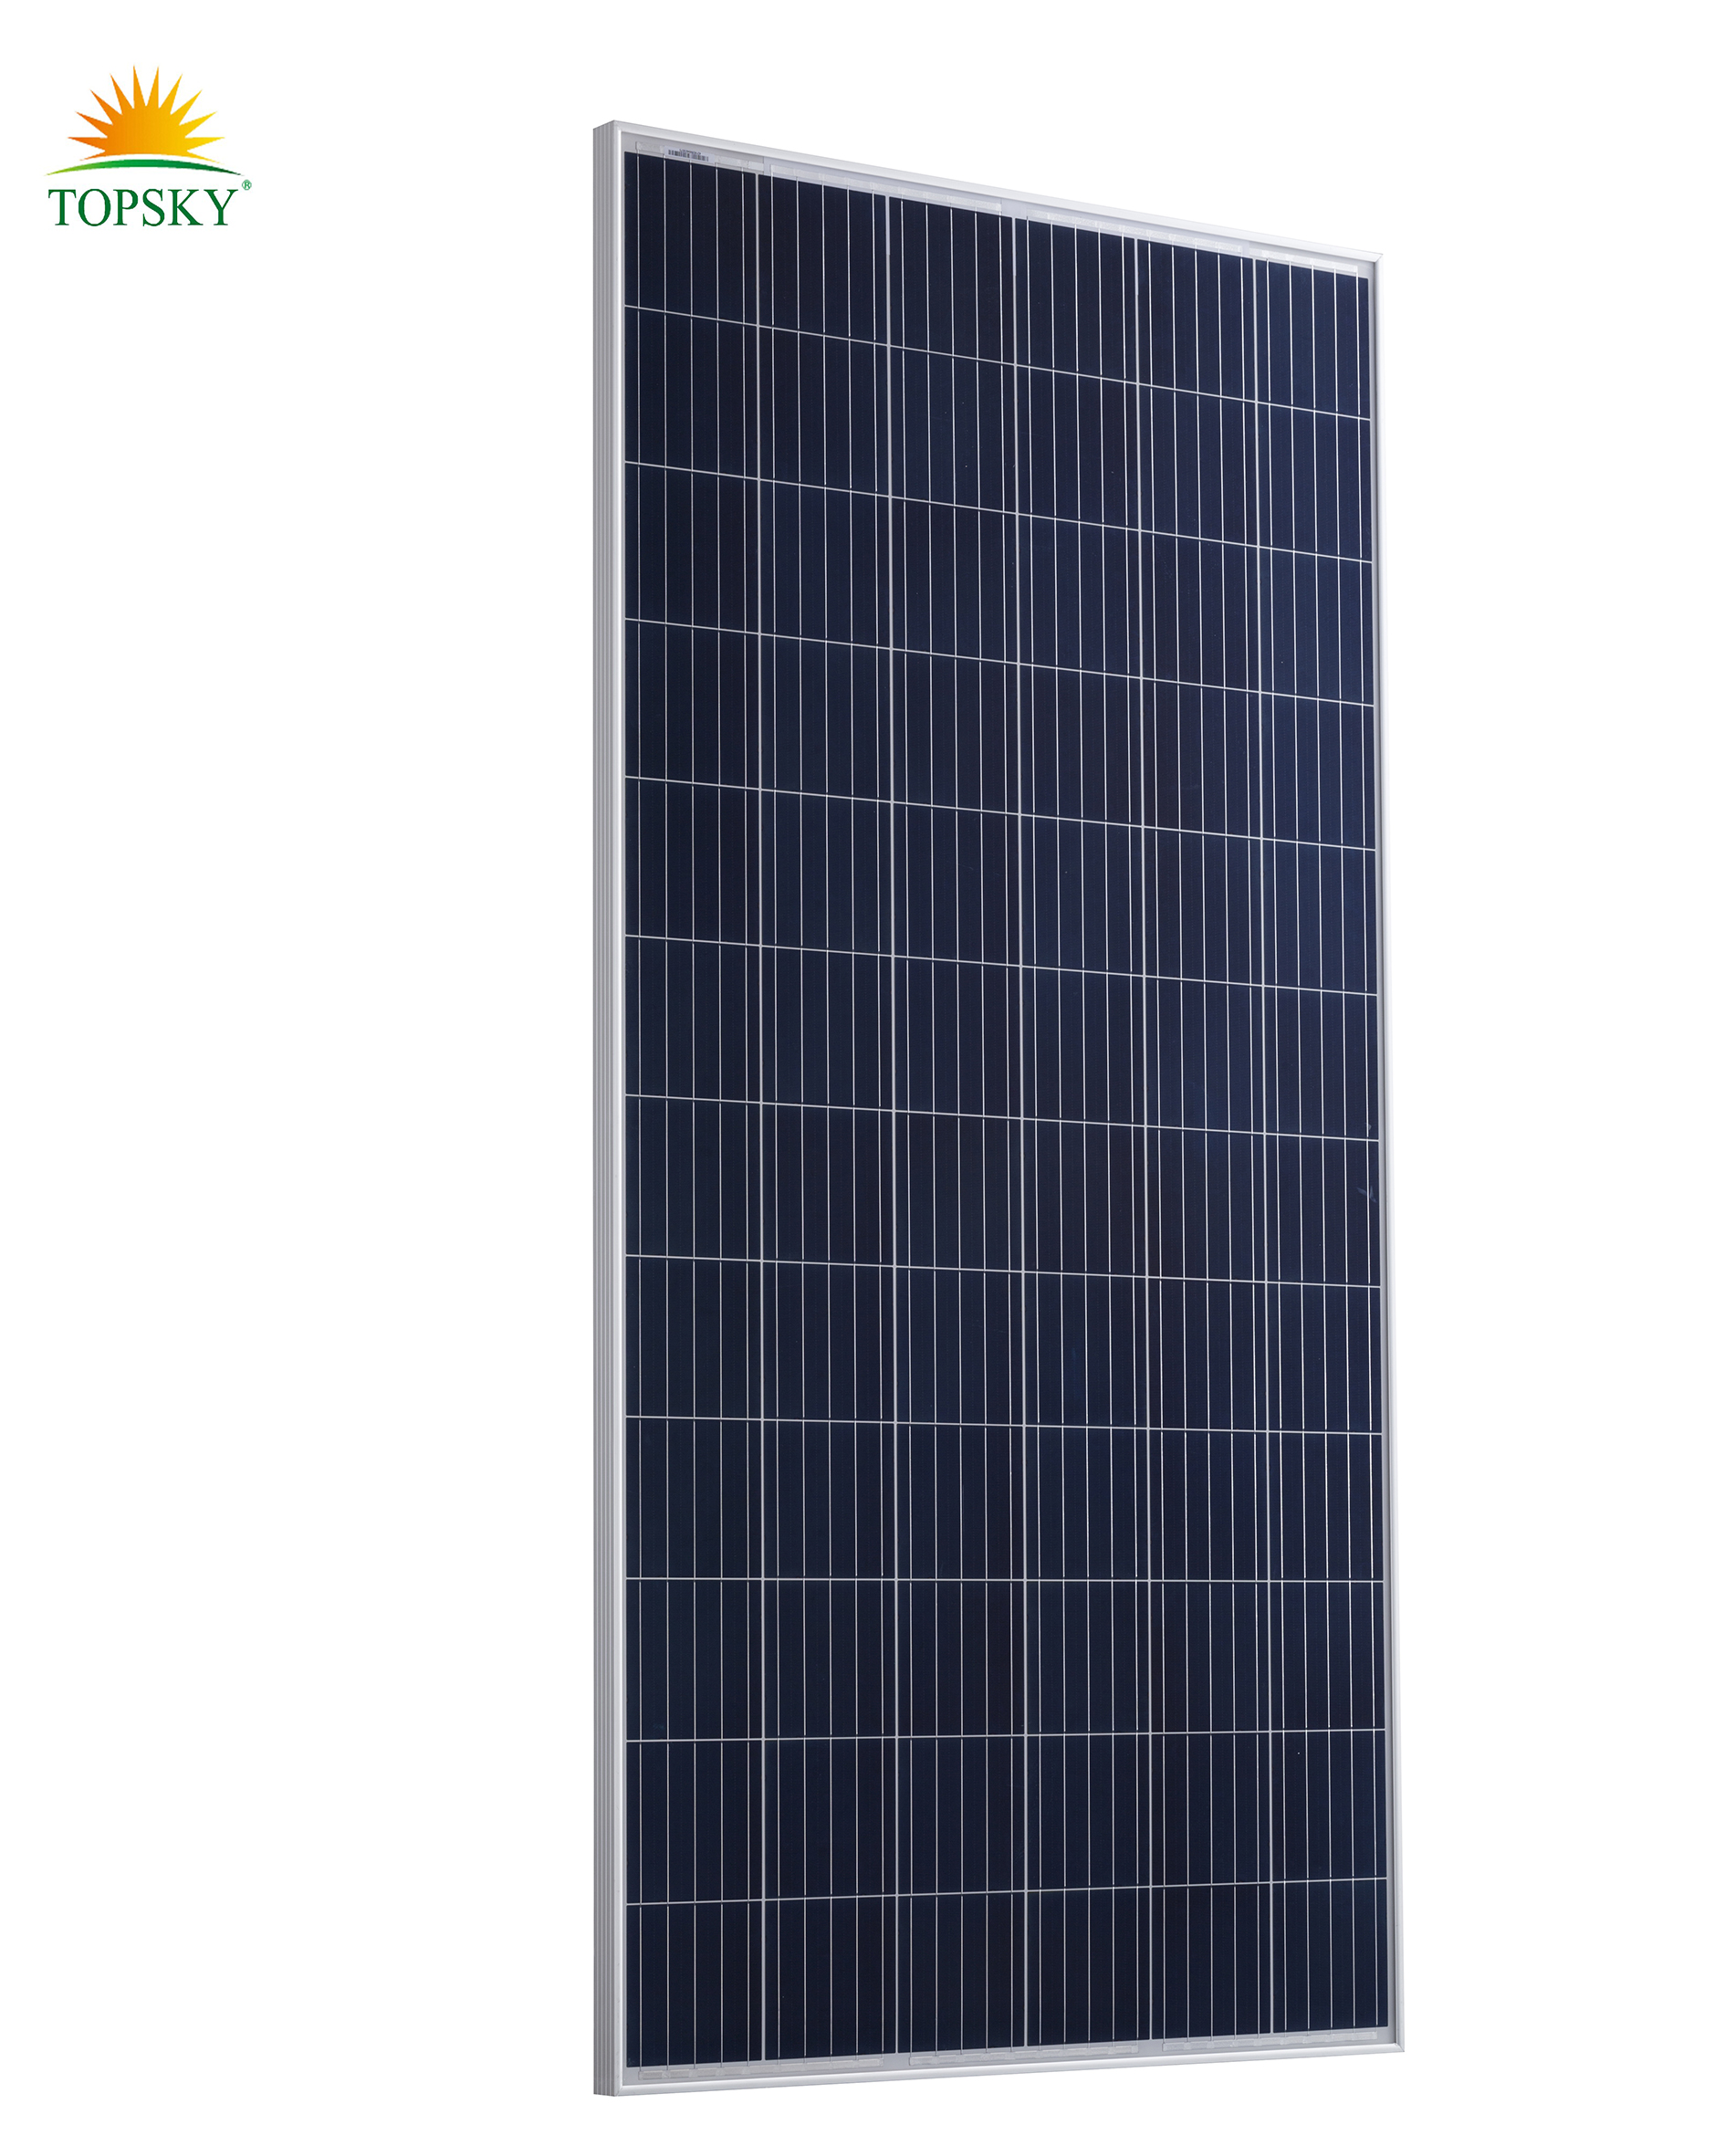 CHINA TOP 10 De Poli PV 325 w 330 w 340 w 345 watt paneles solares